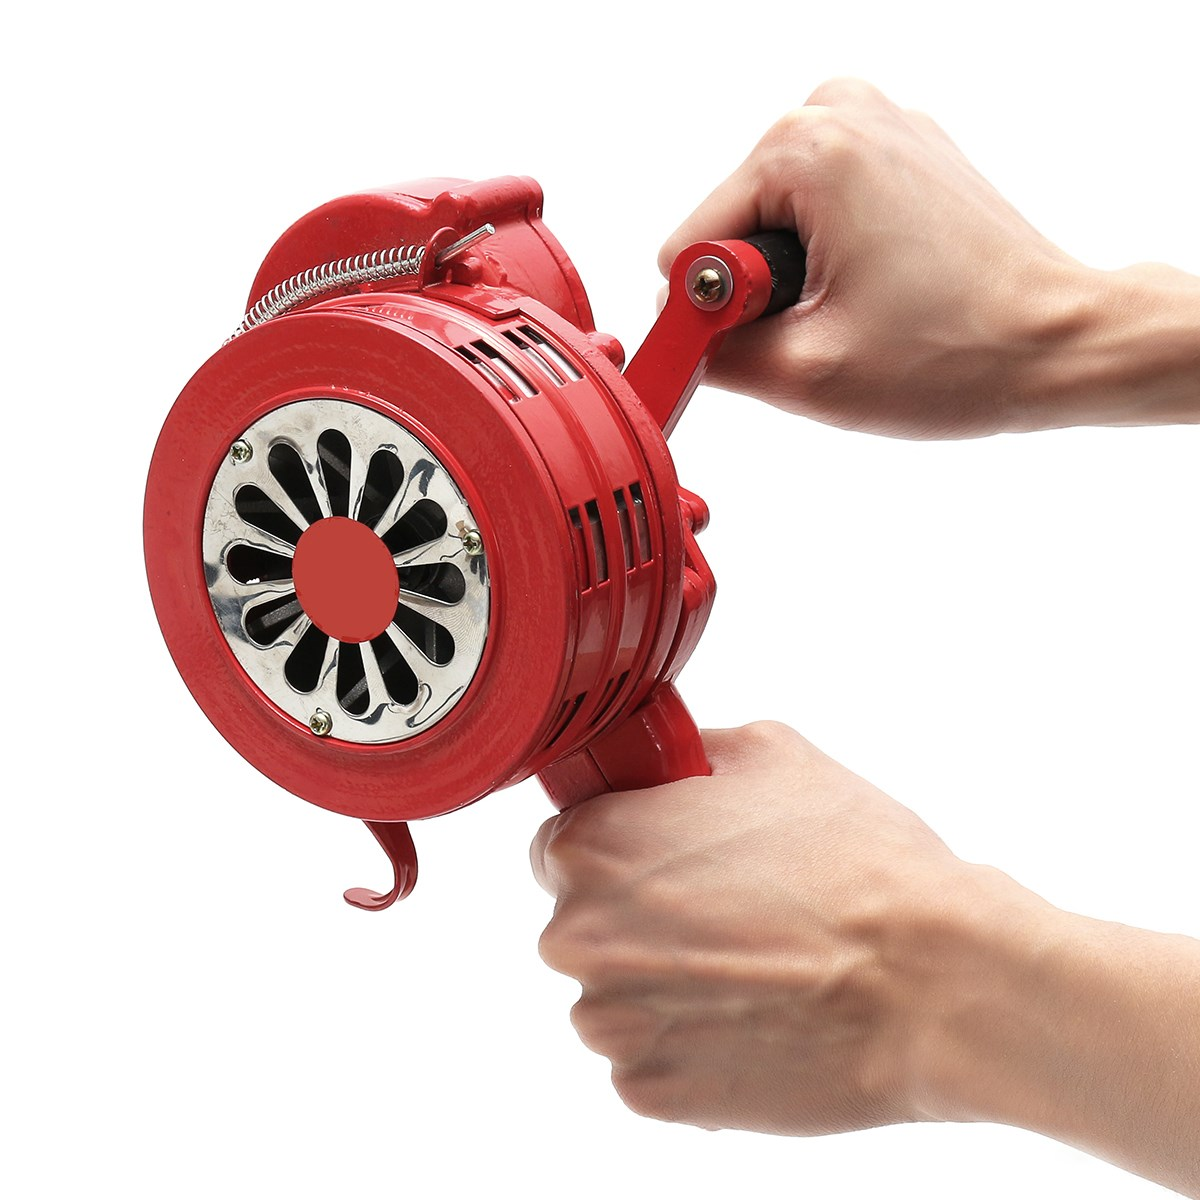 NEW Safurance 4.5 Red Aluminium Alloy Handheld Manual Operated Security Alarm Air Raid Siren Portable Safety ac110v 160db motor driven air raid siren metal horn industry boat alarm